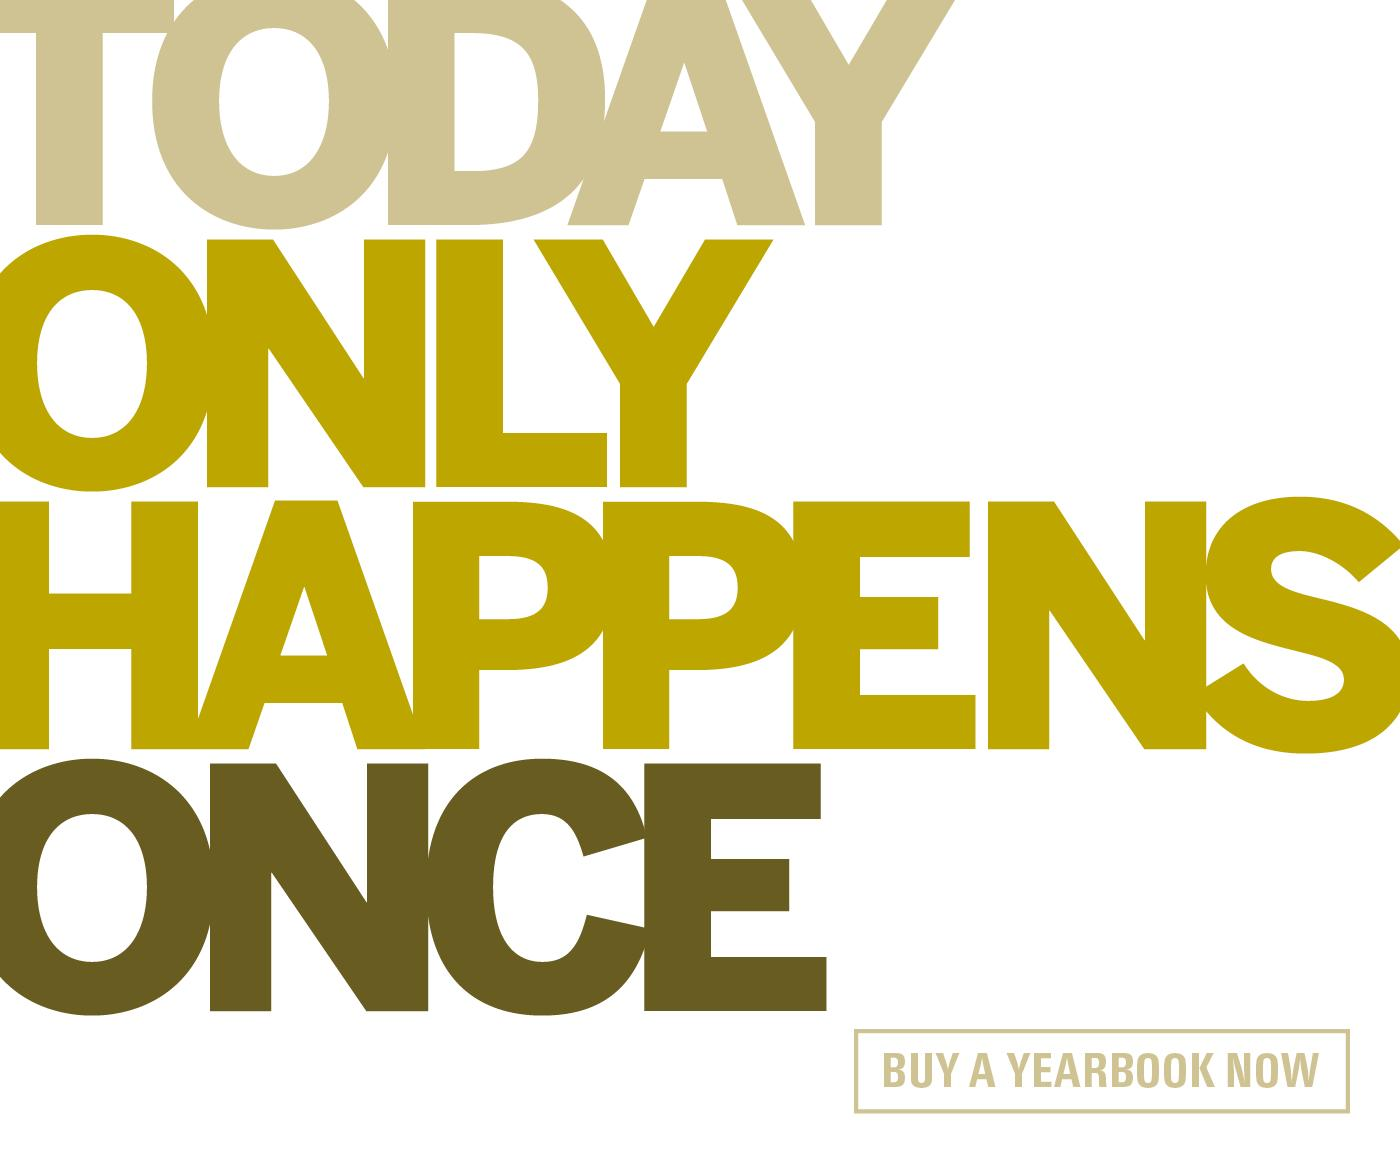 """Today Only Happens Once"" graphic serving as link to Herff Jones yearbook ordering site"